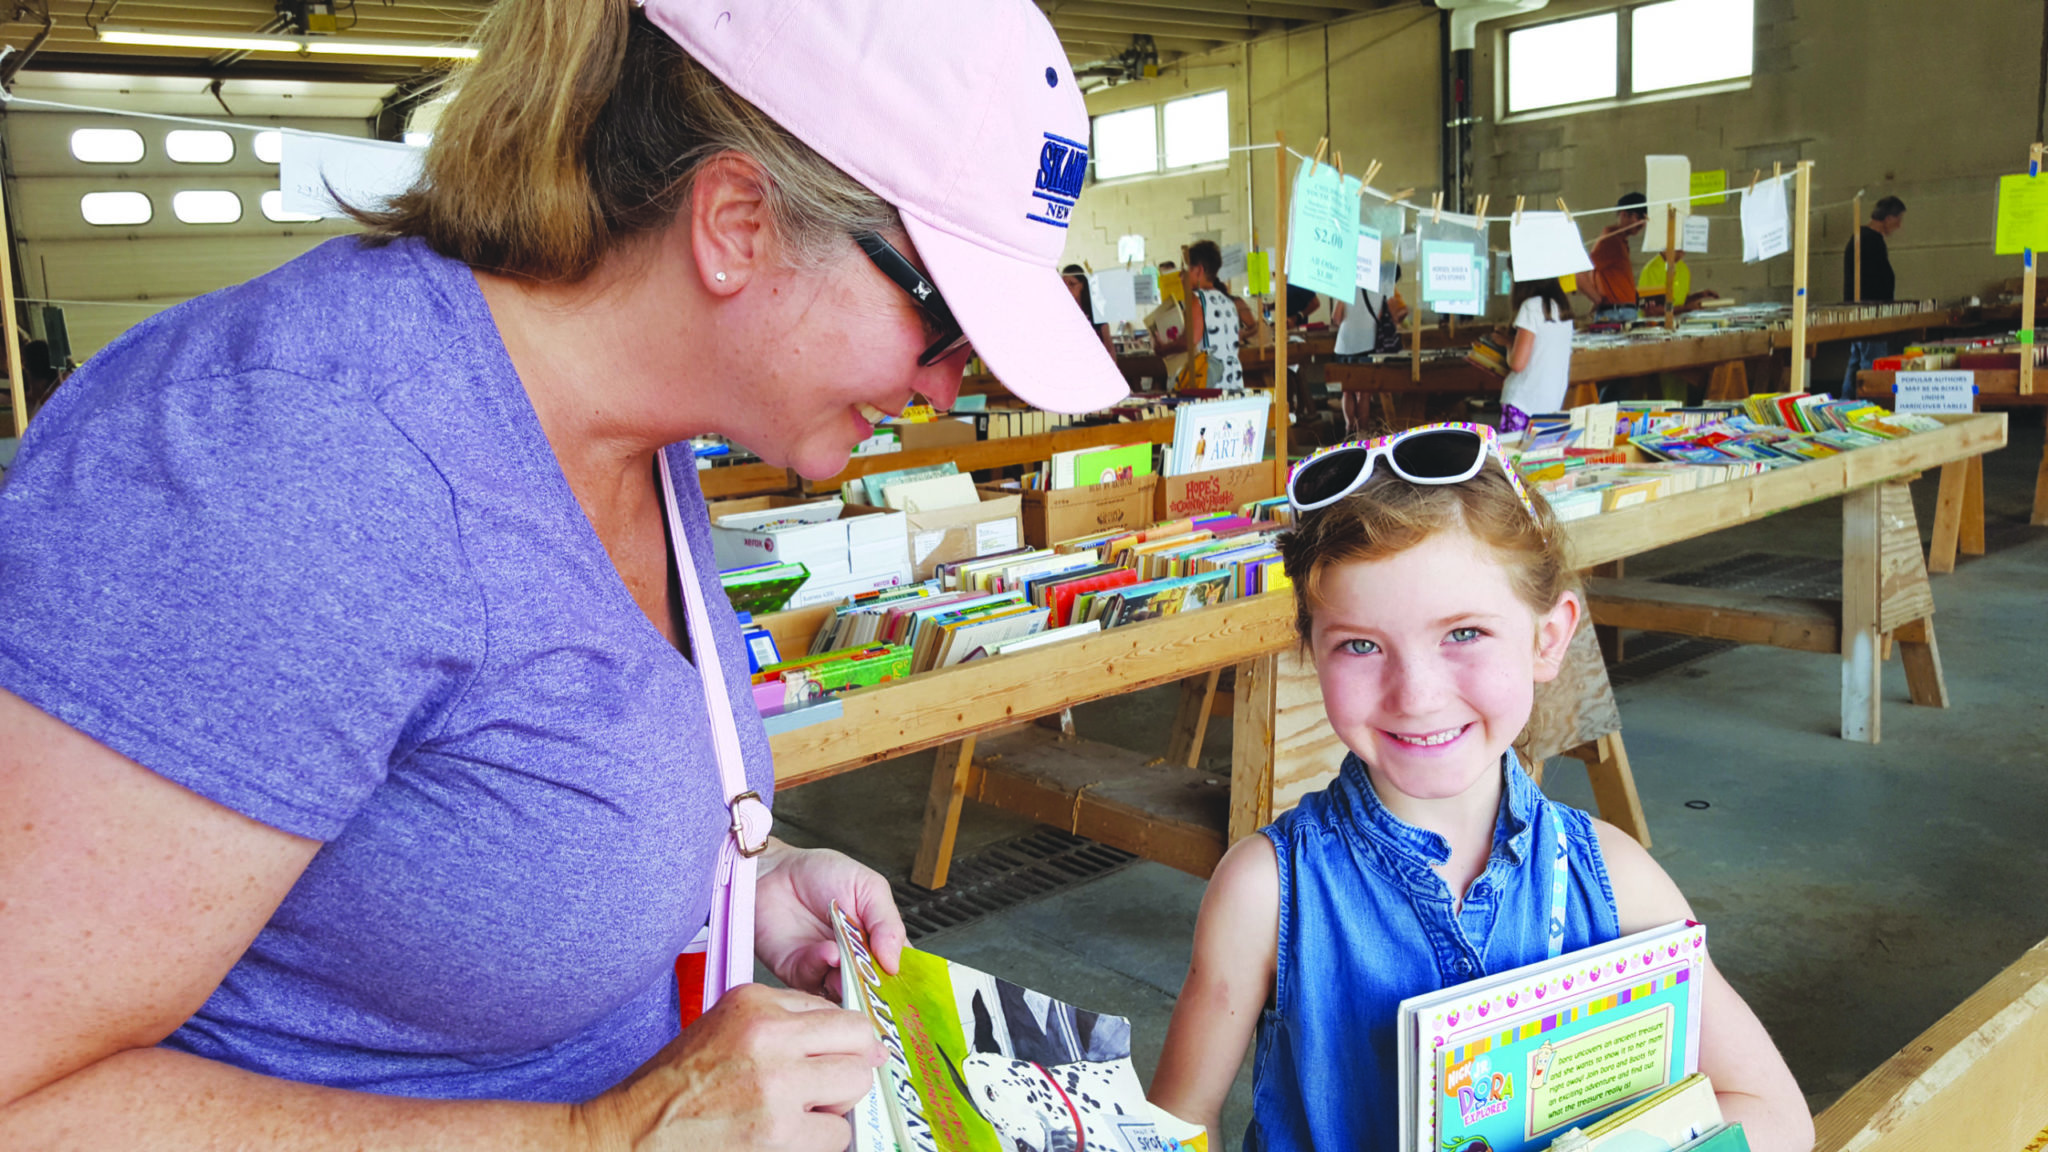 Skaneateles Library book sale July 11-14